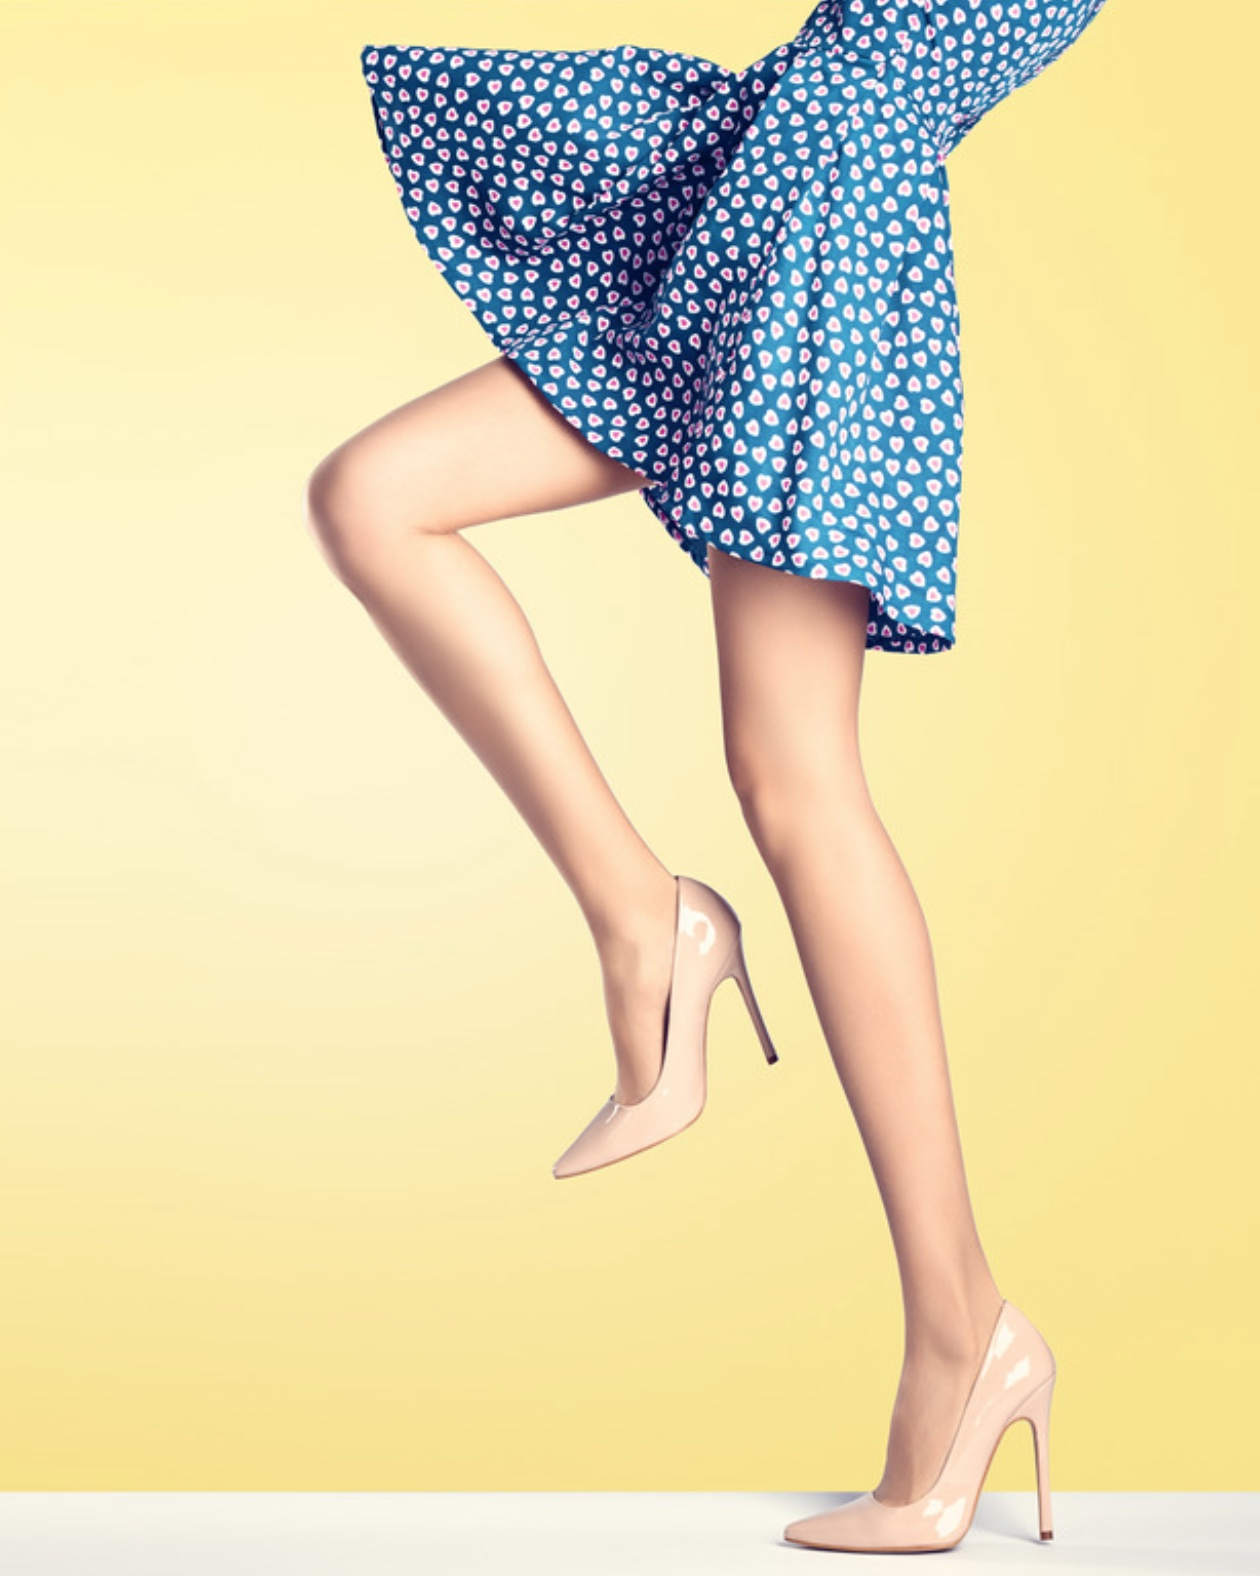 Always wear the heels you plan to wear with the skirt when measuring a hemline